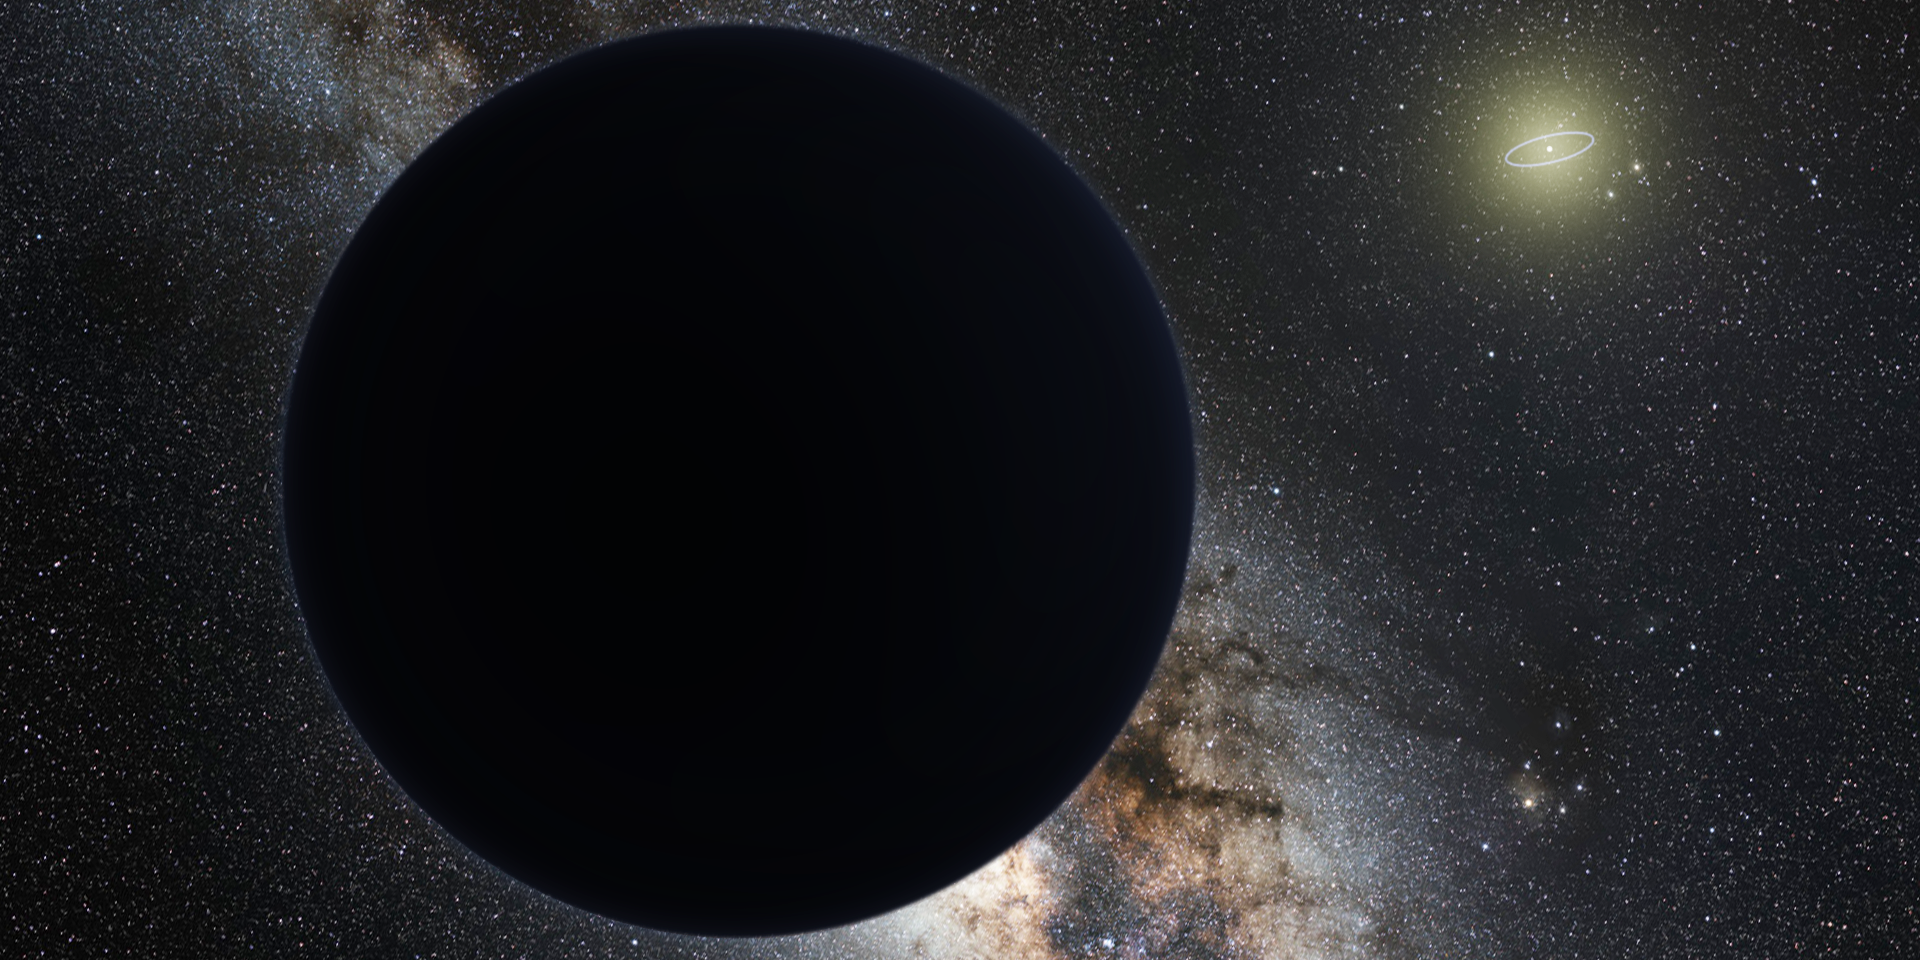 A massive planet lurking in the outer solar system could be tilting our cosmic neighborhood.